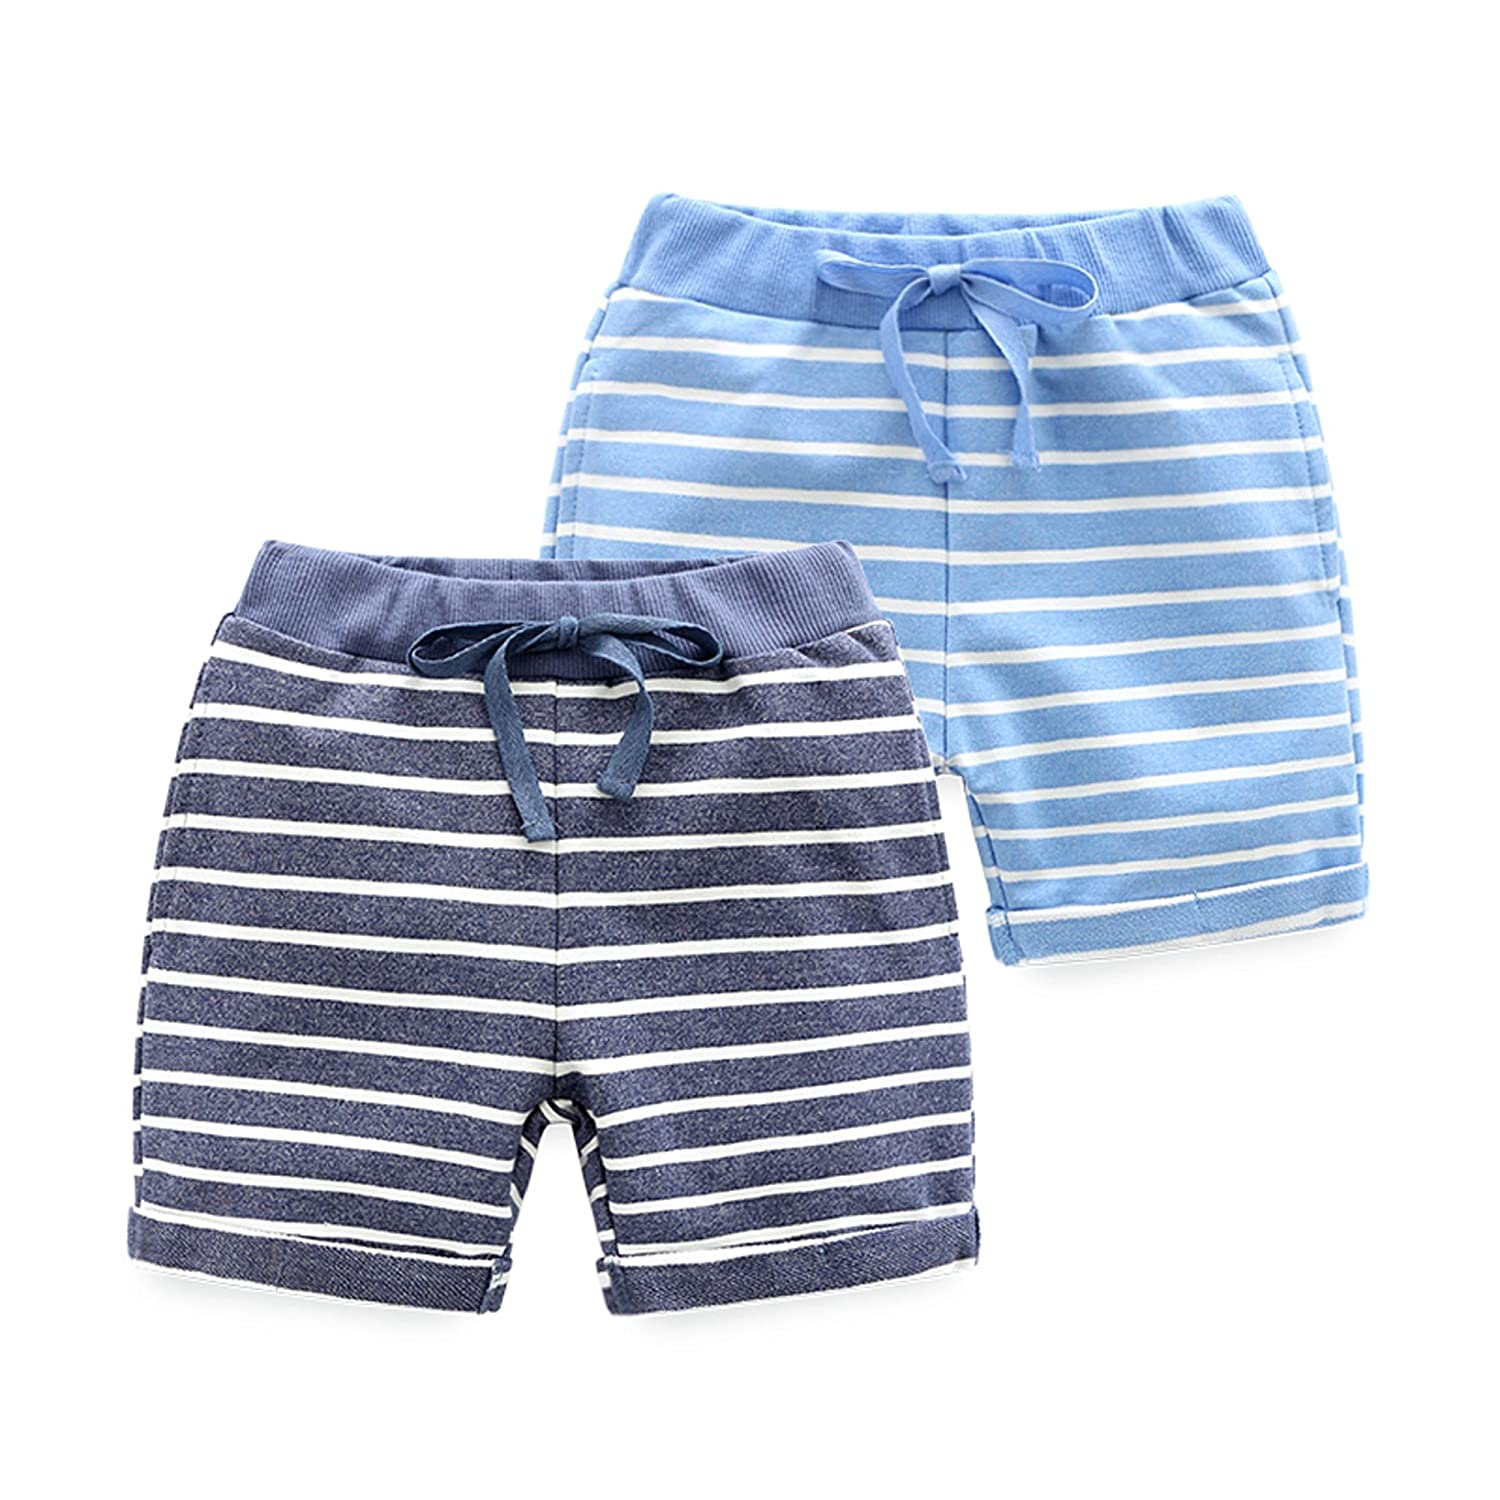 HUAER& Baby Boy's Summer Shorts 2 Pack